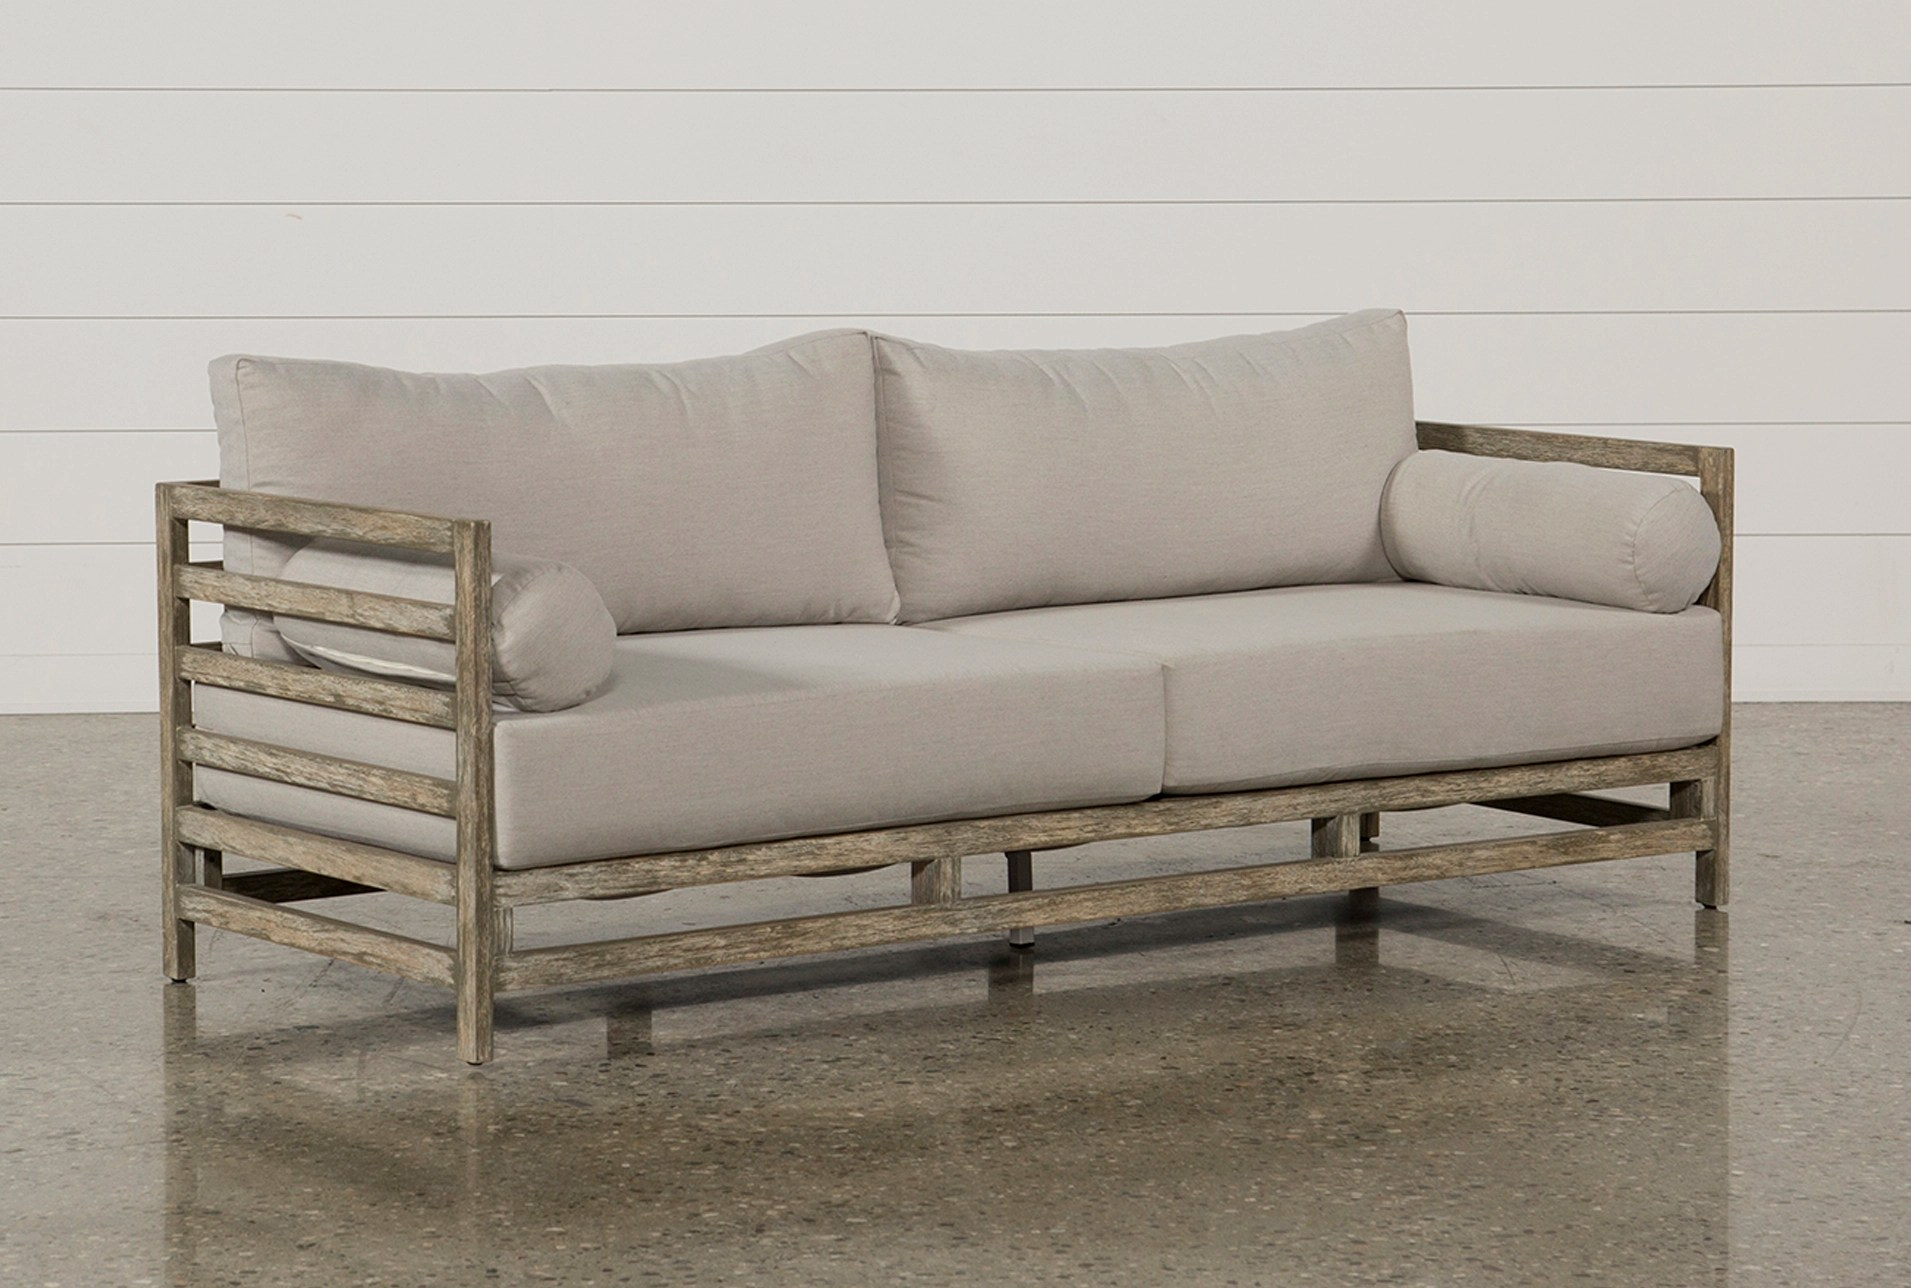 Outdoor Pompeii Sofa   Living Spaces on Living Spaces Outdoor Sectional id=27609